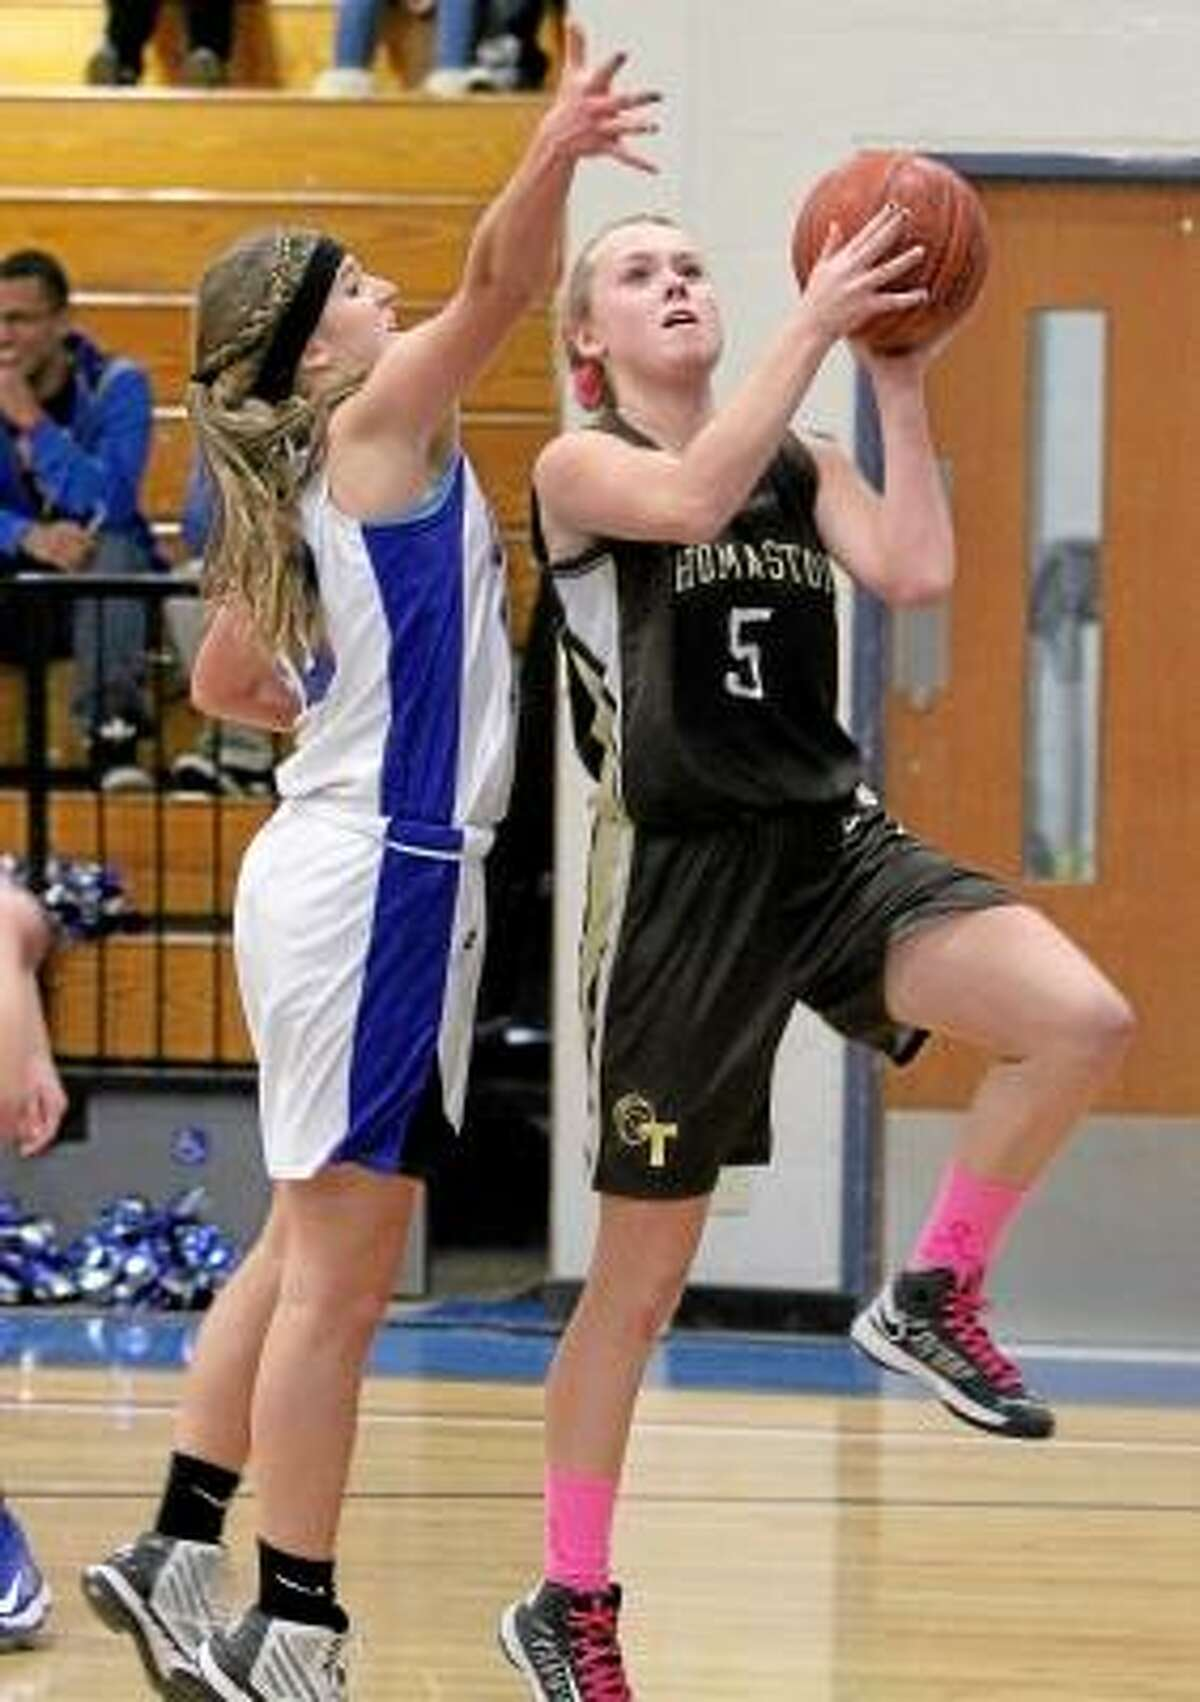 Abby Hurlbert (5) of Thomaston goes up for a shot as Lewis Mills' Lesleigh Carter (10) attempts to block. Photo by Marianne Killackey/Special to Register Citizen